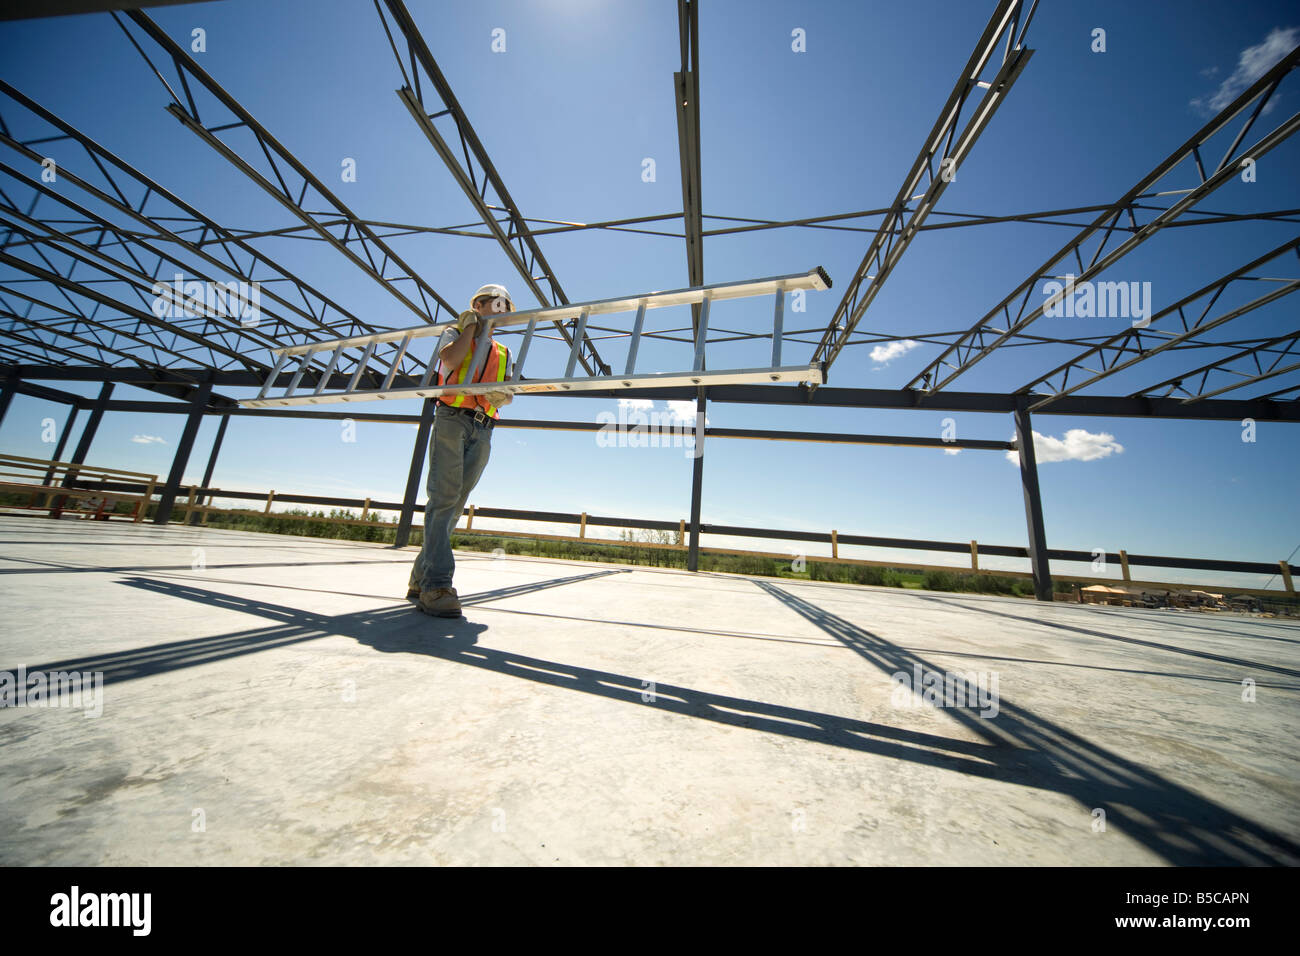 Working on the job site - Stock Image